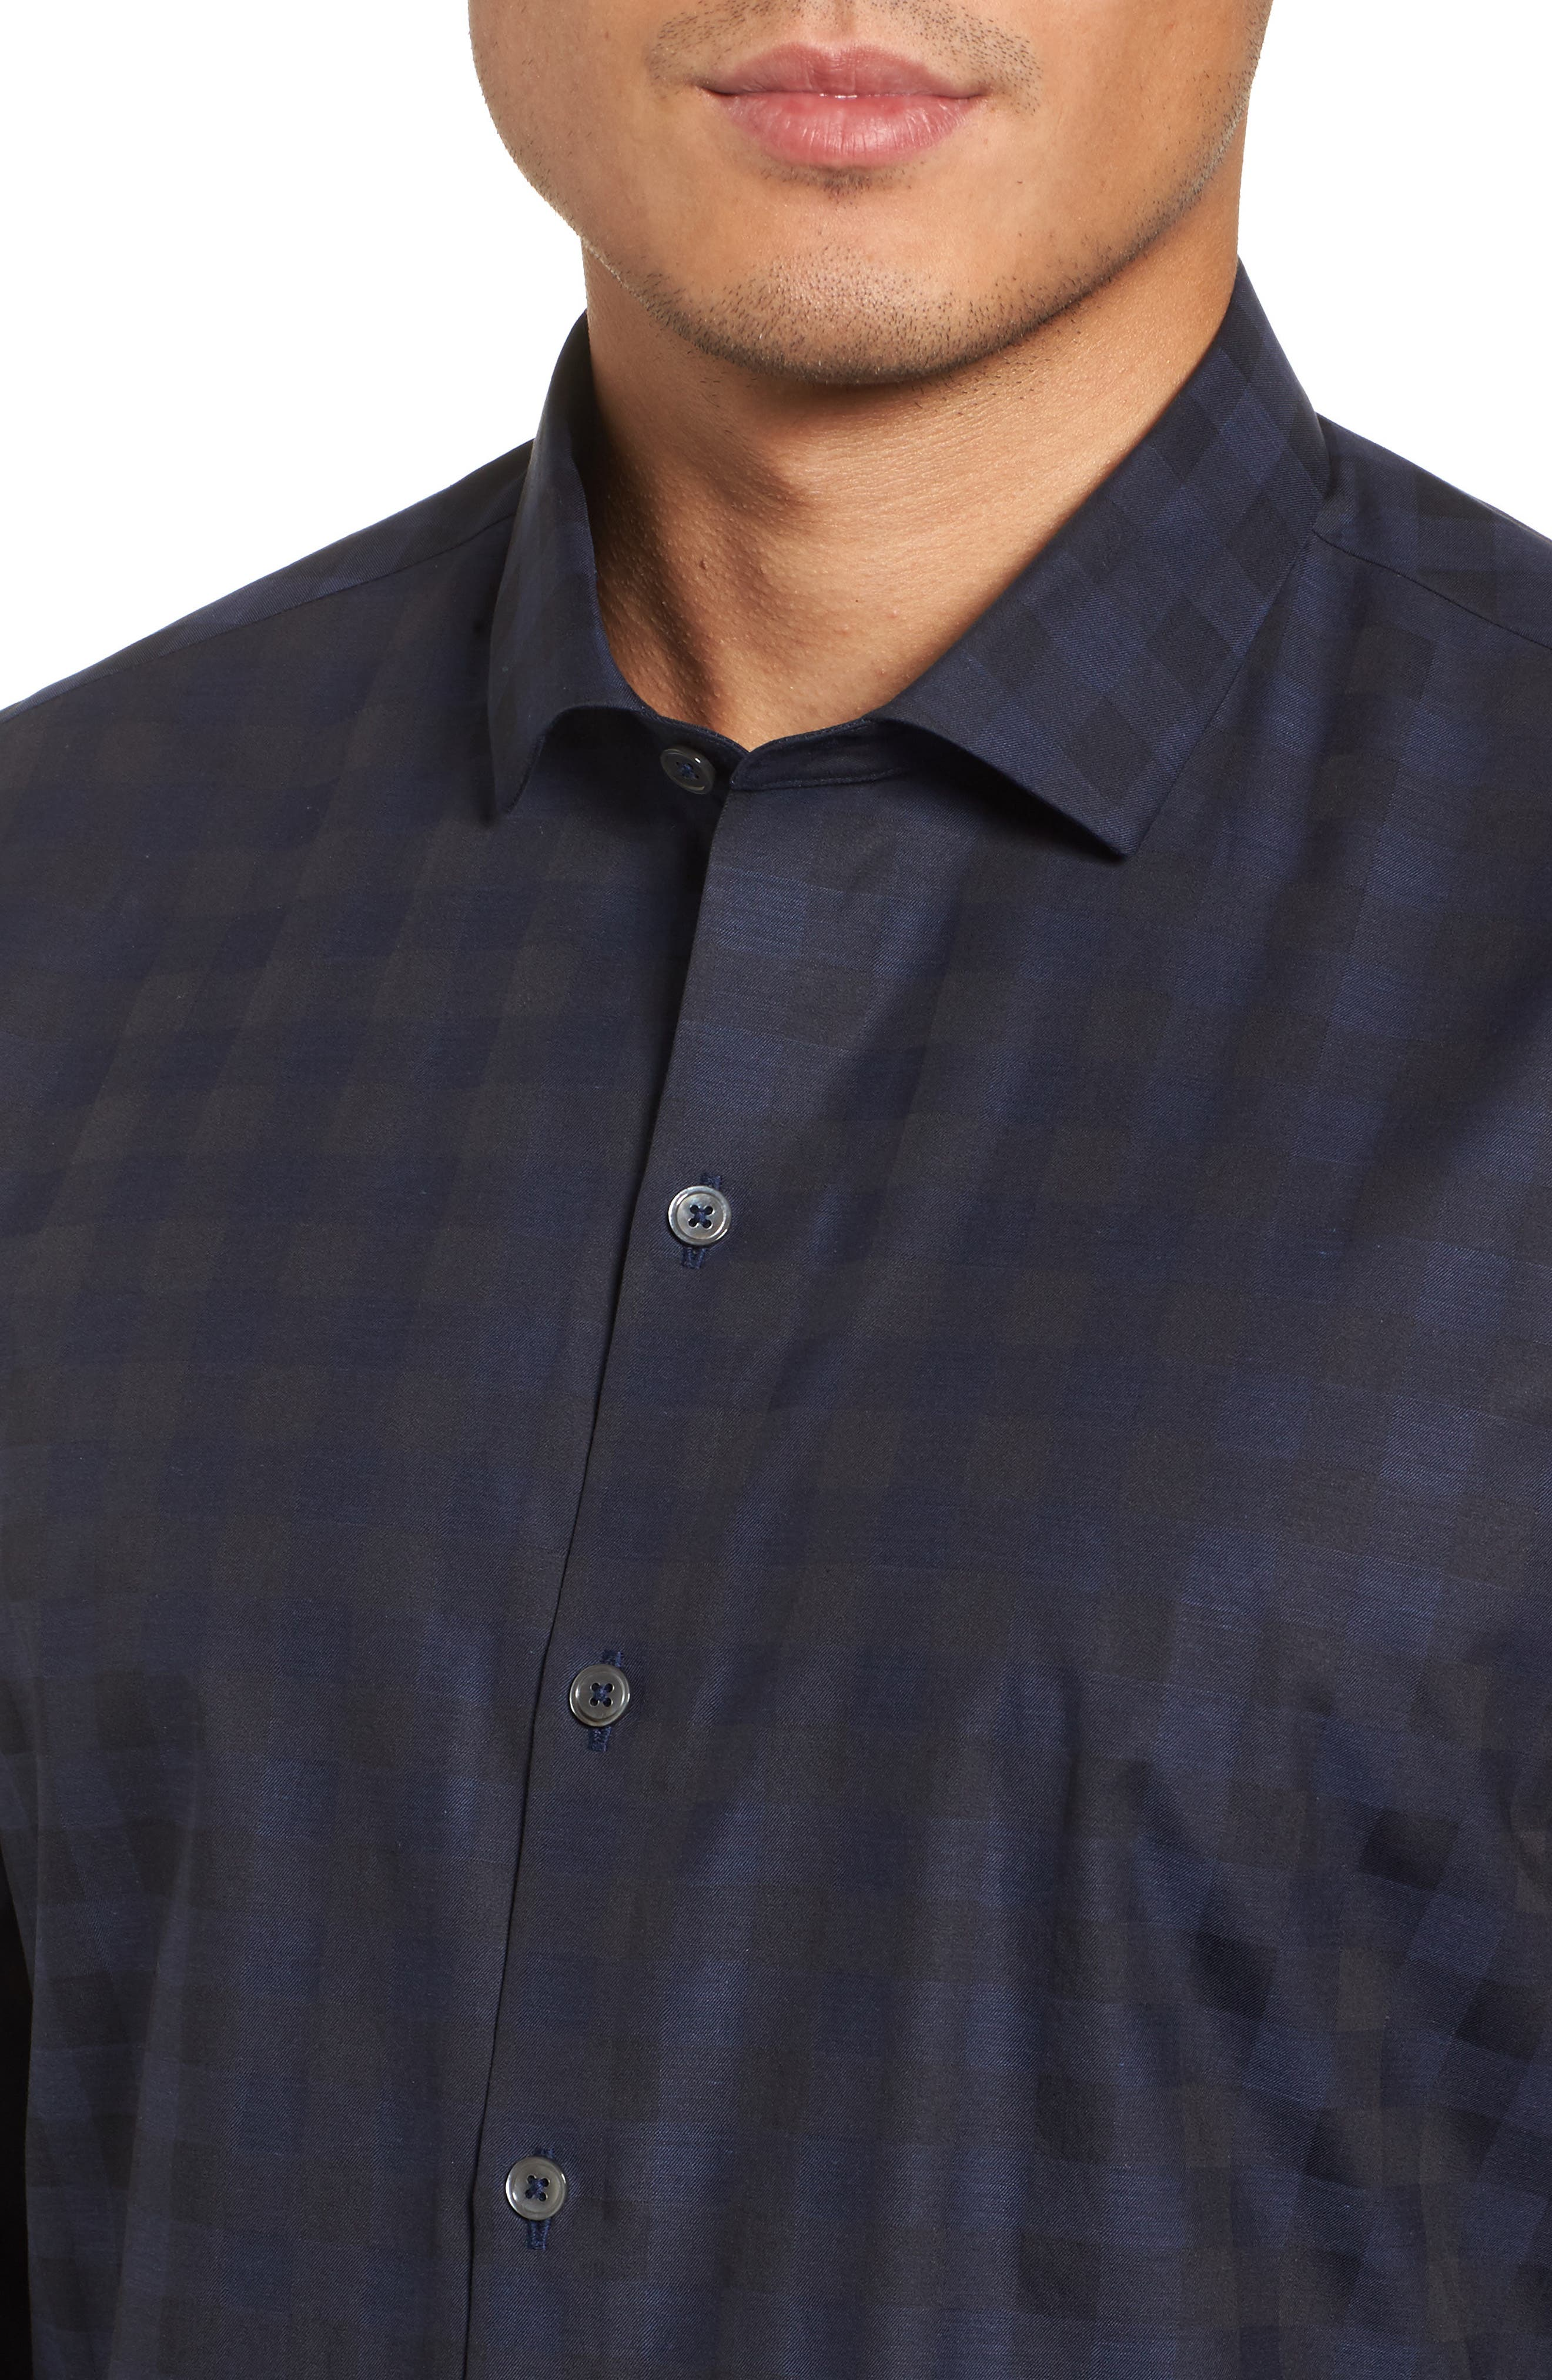 Torres Check Sport Shirt,                             Alternate thumbnail 4, color,                             Navy